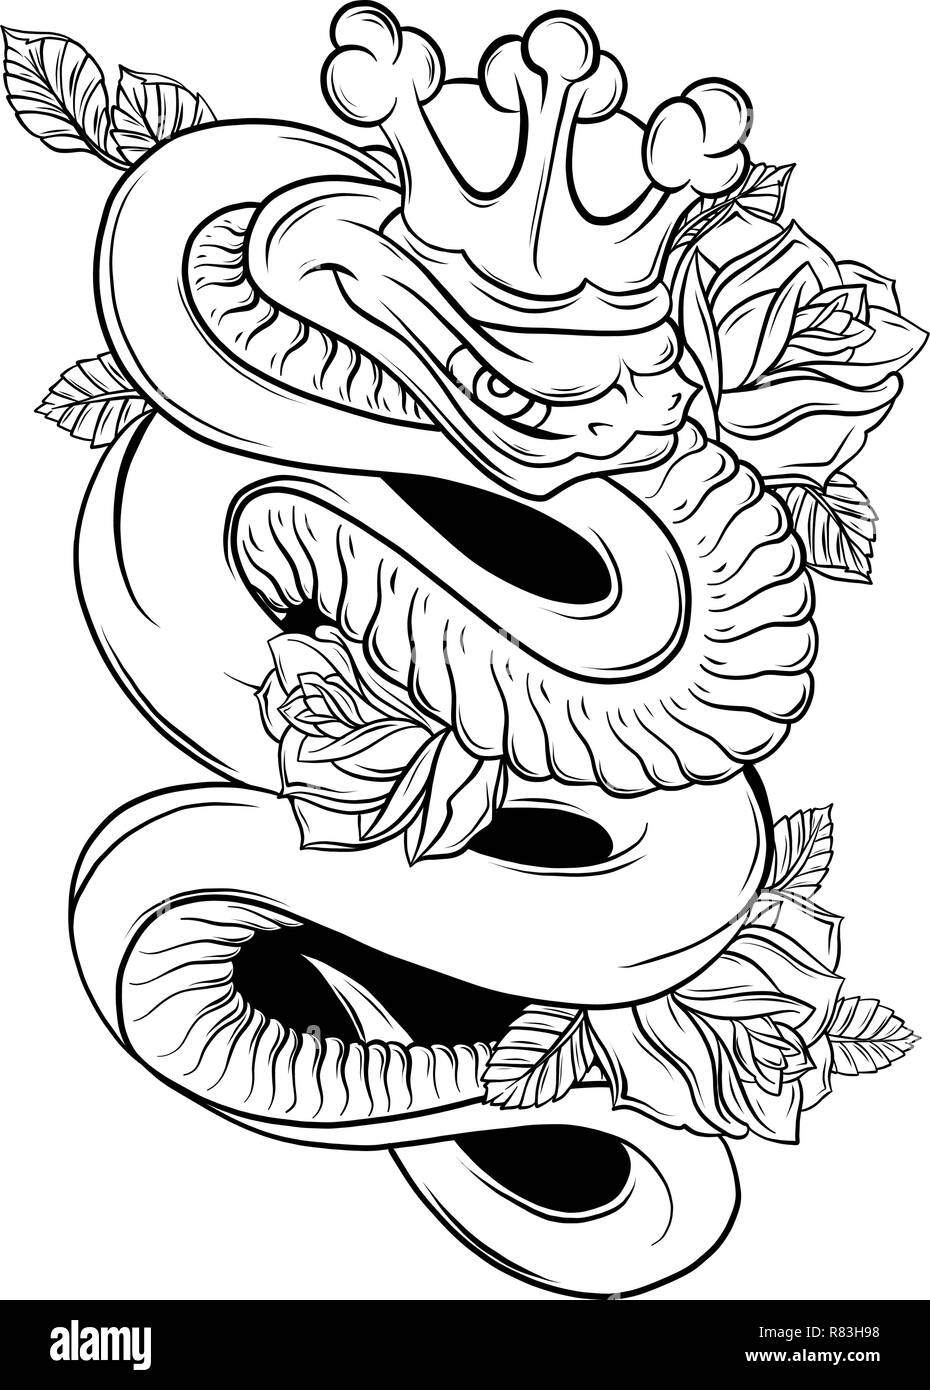 Tattoo Art High Resolution Stock Photography And Images Alamy Official tattoo brand tattoo books are one of the greatest contributions to the tattoo industry in the 20th century. https www alamy com vector illustration snake and rose traditional tattoo art image228731476 html